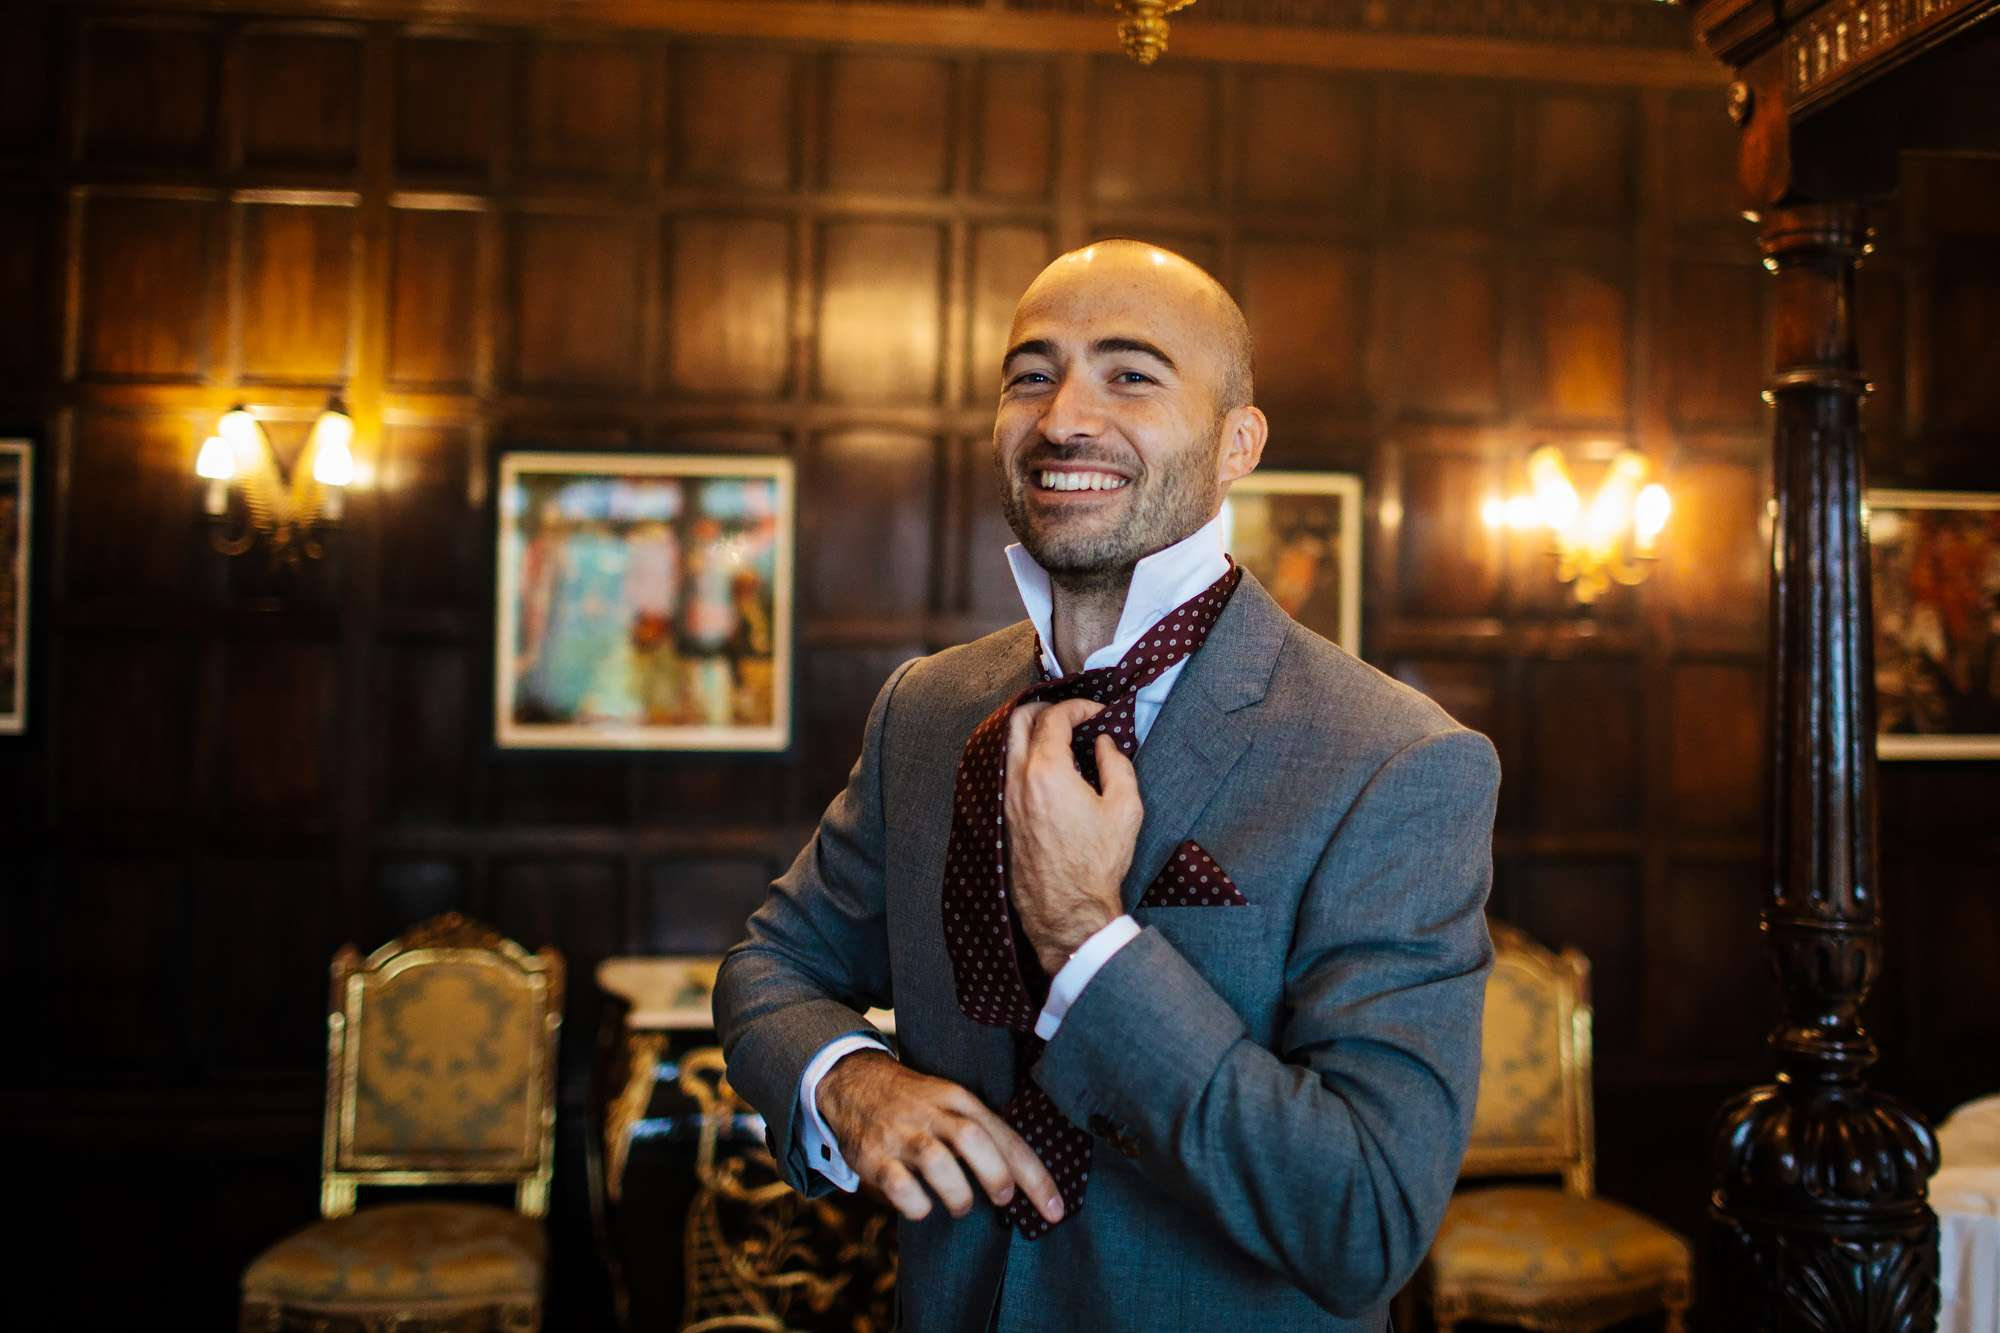 Groom getting dressed at a Cowdray House wedding